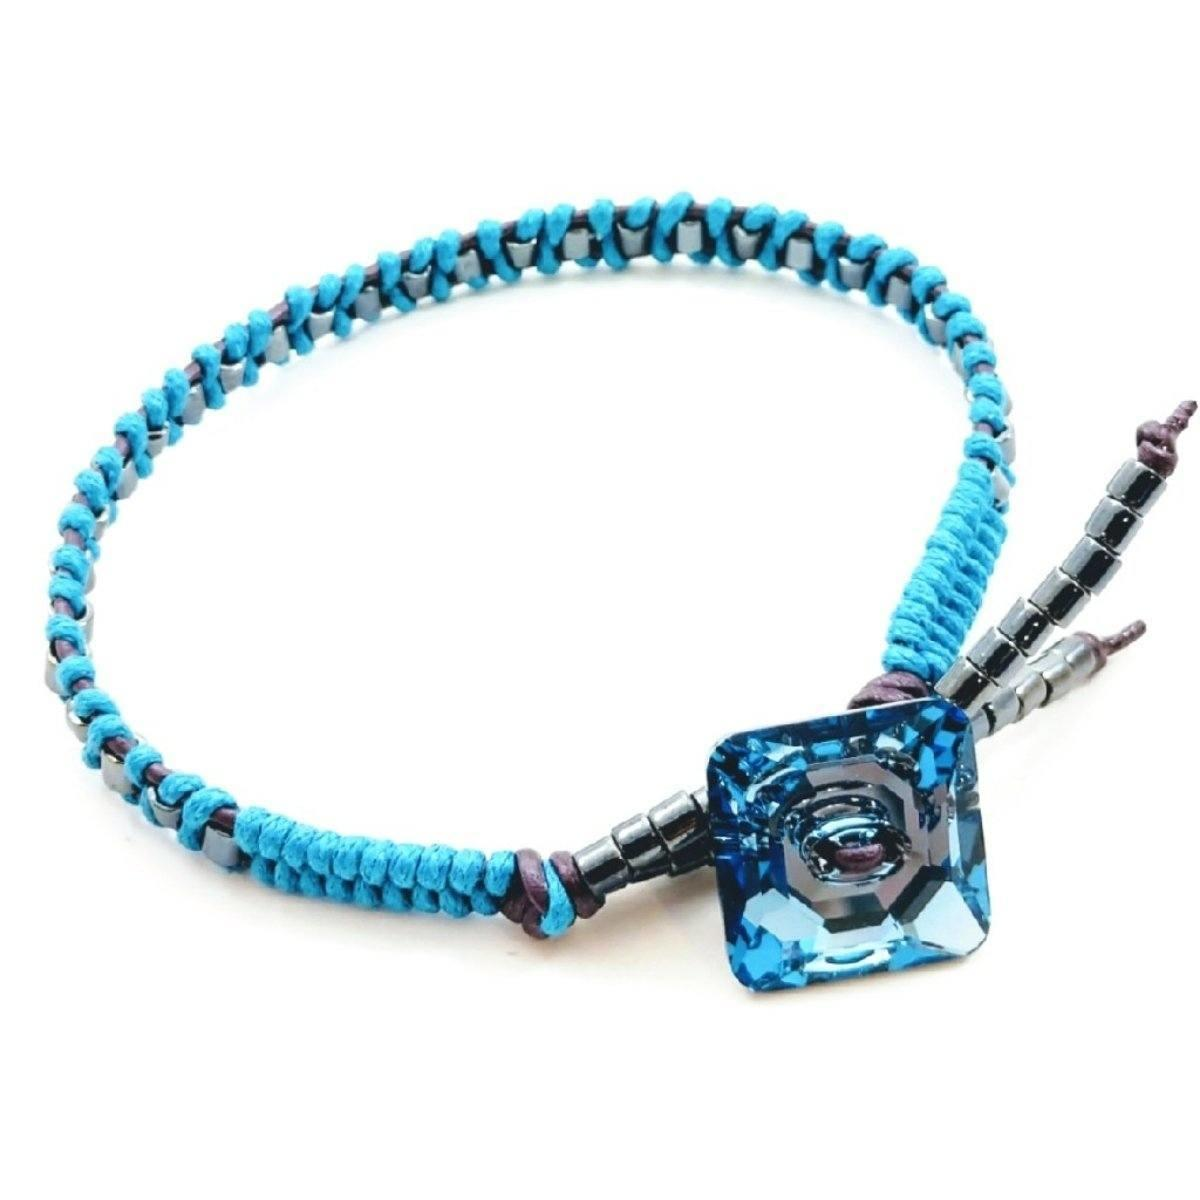 Aqua Hematite Bead Braided Square Swarovski Crystal Button Bracelet